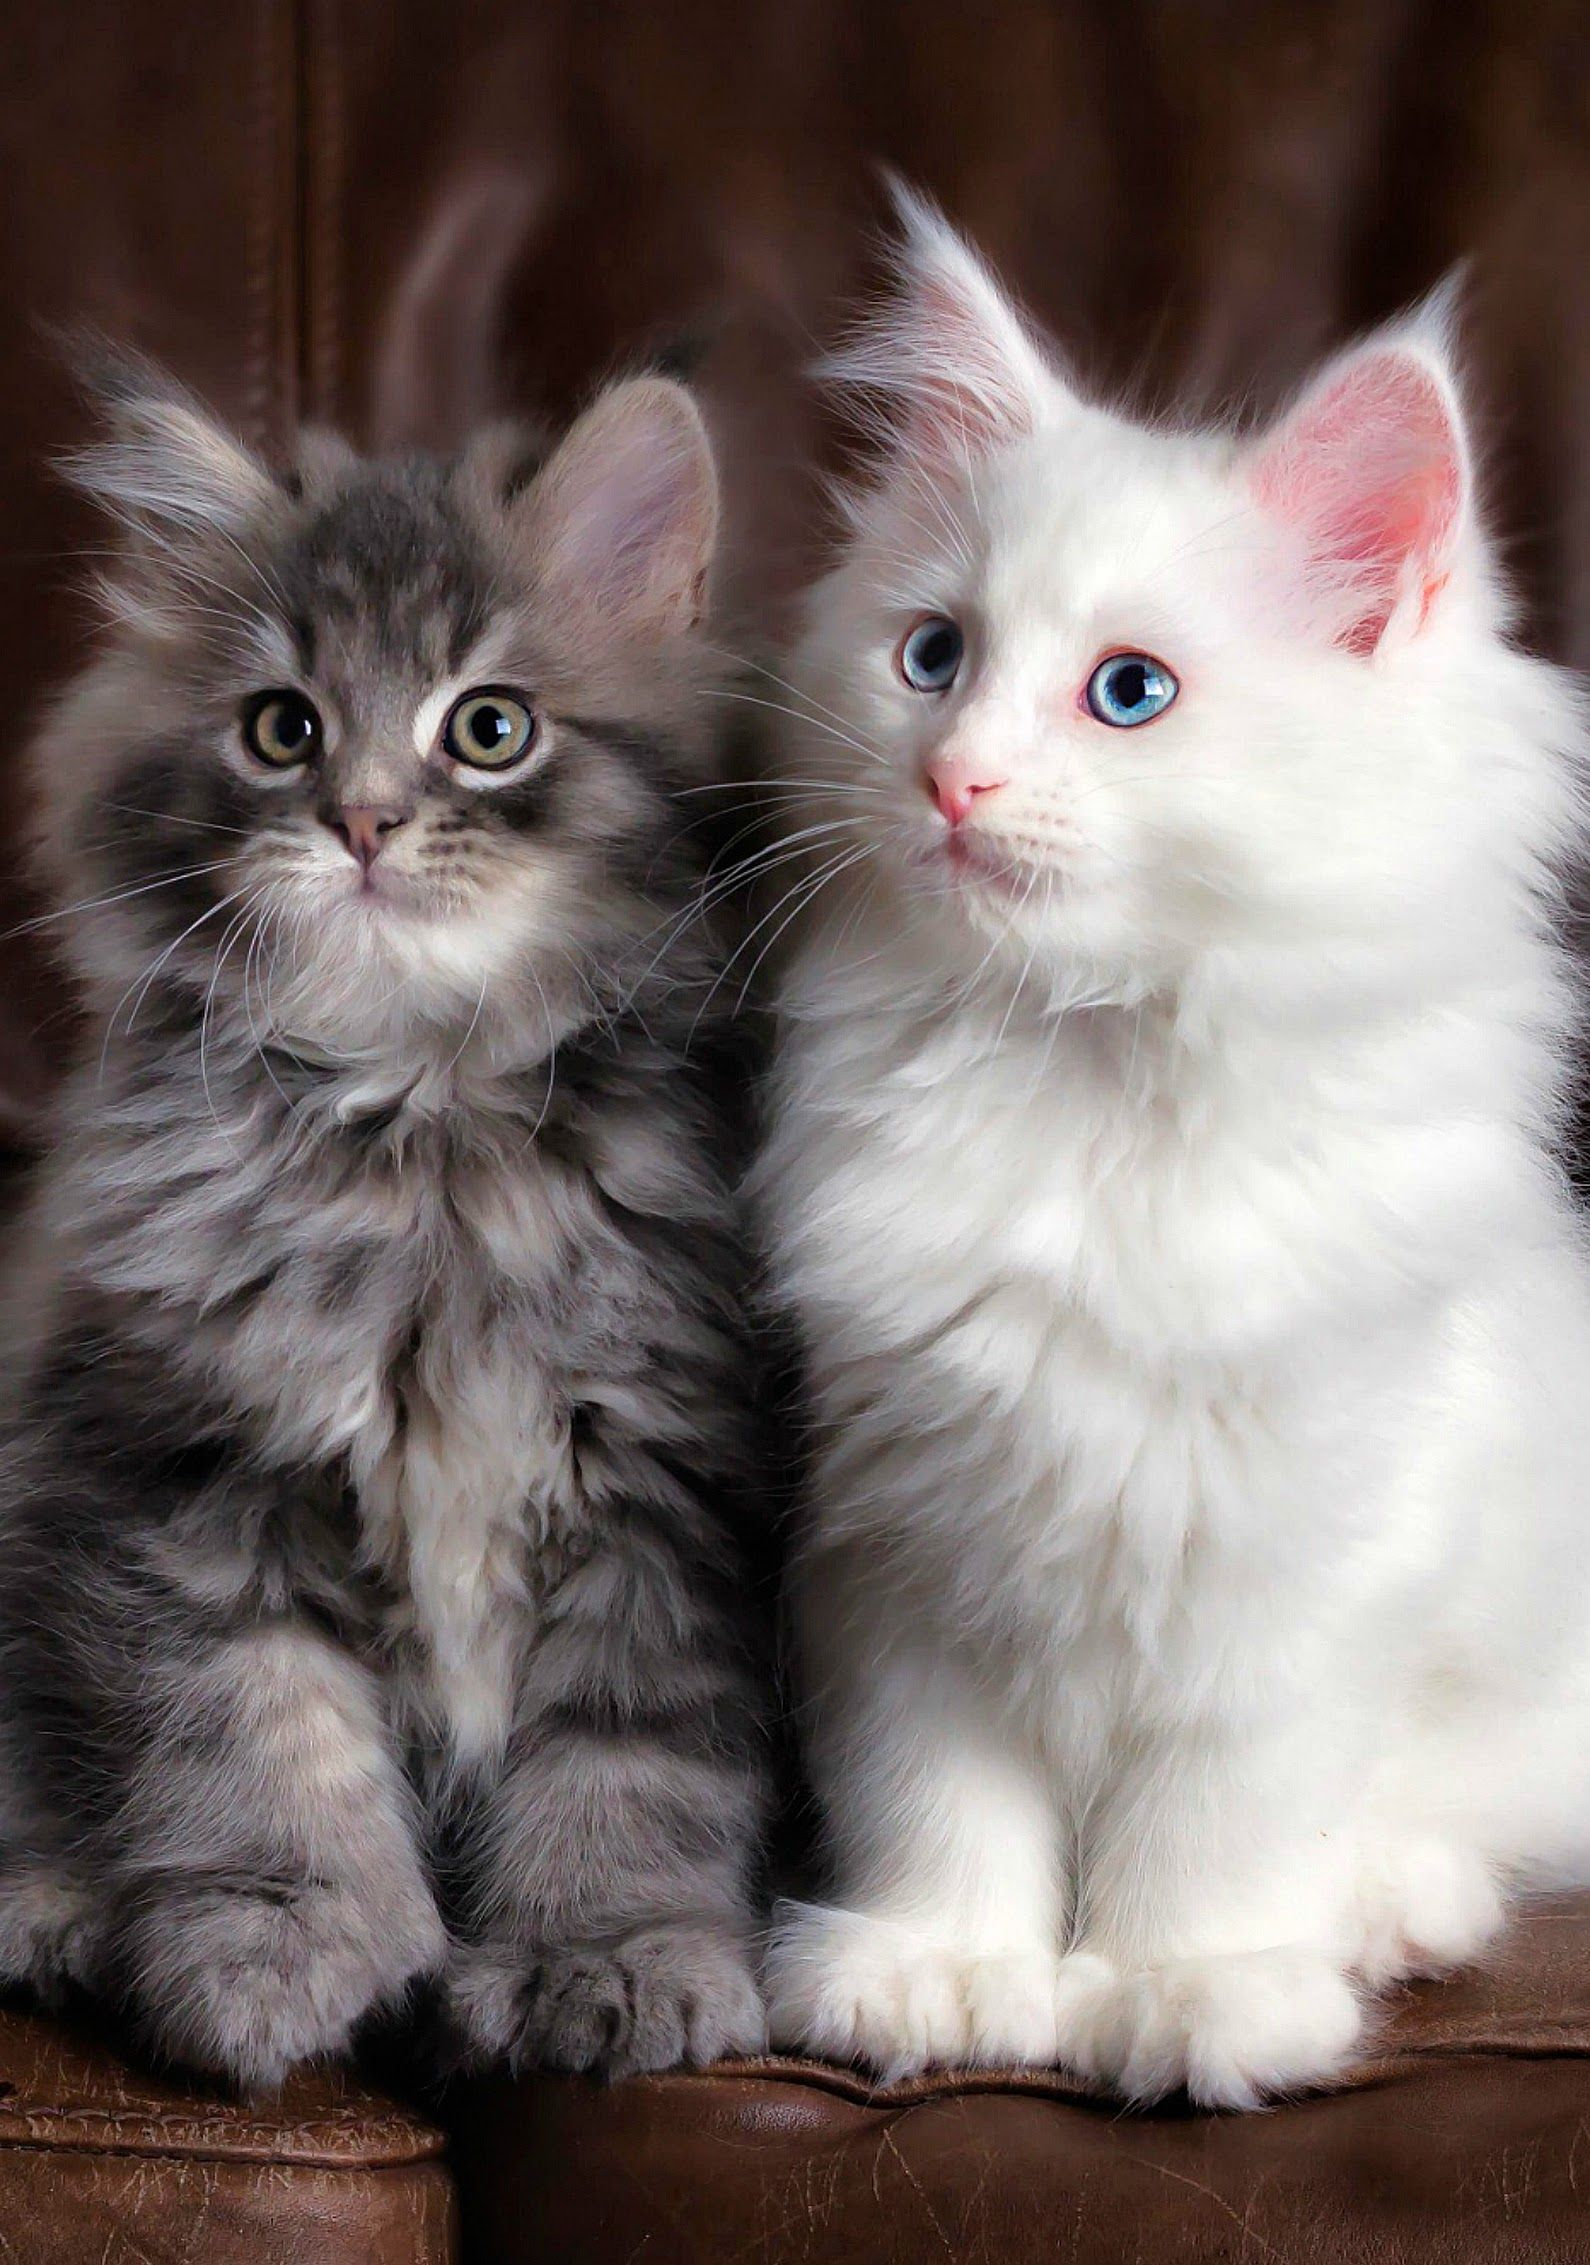 Bad Breath In Cats Can Be A Red Flag For Tooth Decay Or More Serious Conditions Want To Know More Click On The Image Kittens Cutest Cute Animals Cats